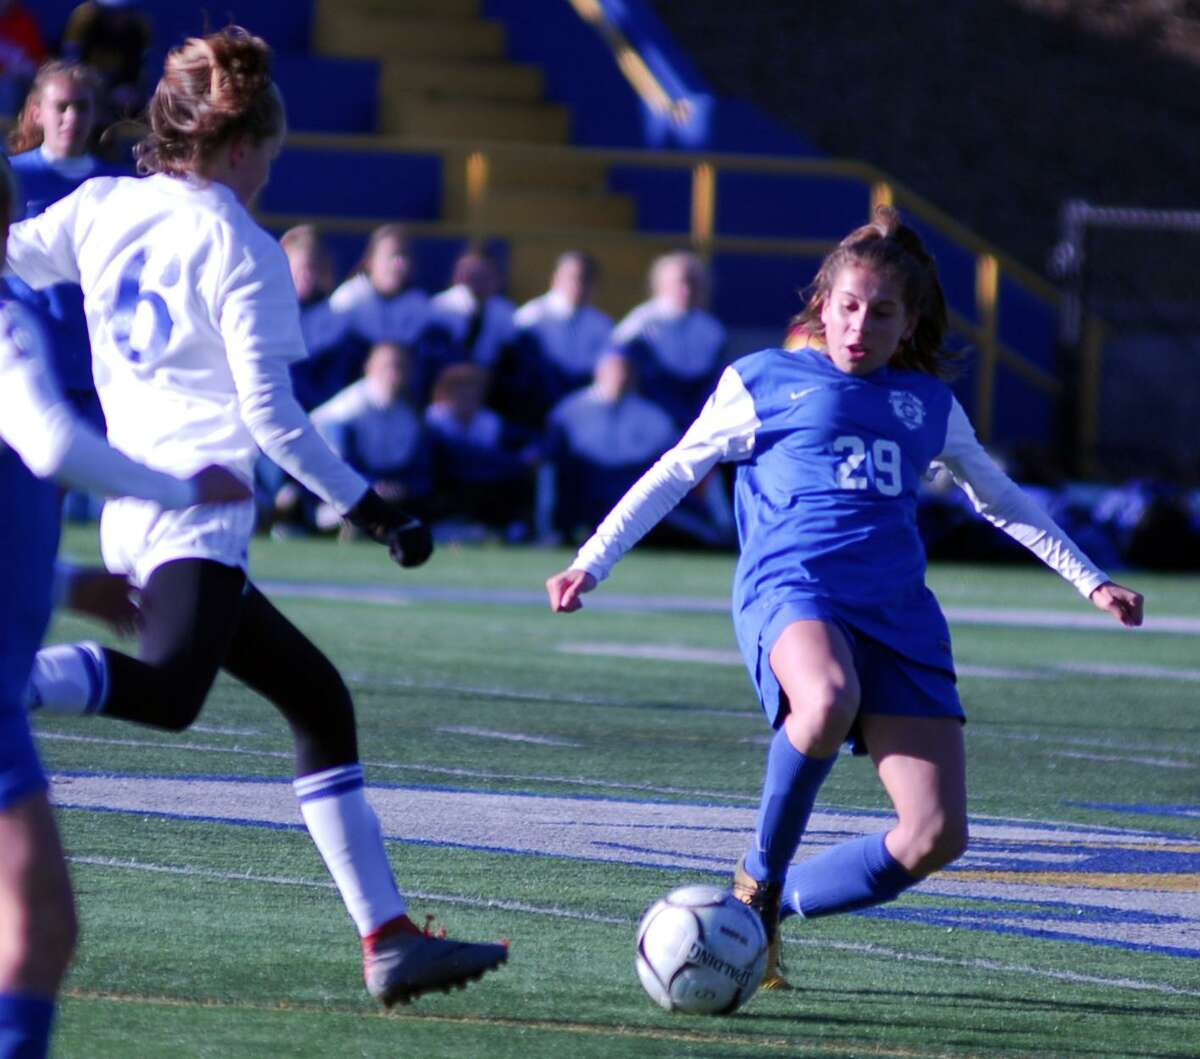 Glastonbury's Alexandra Bedard makes a sliding challenge during a 2-1 win over Newtown in the Class LL girls soccer quarterfinals on Saturday.